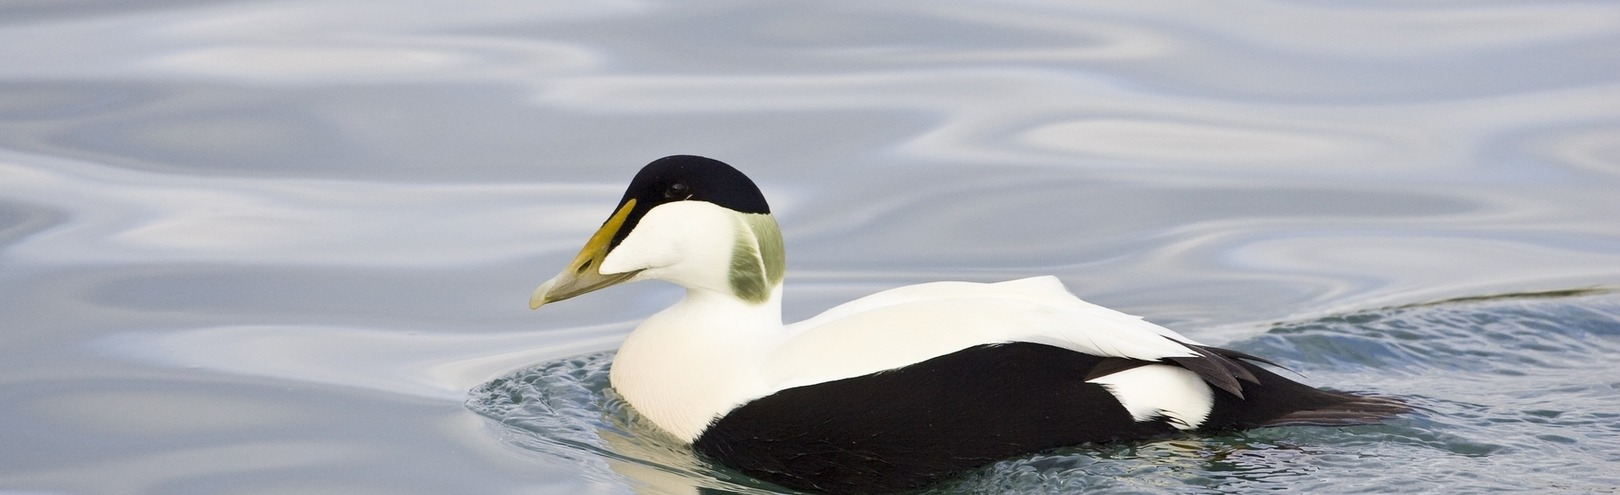 Eider duck behaviour in a changing world - Available at University of Iceland